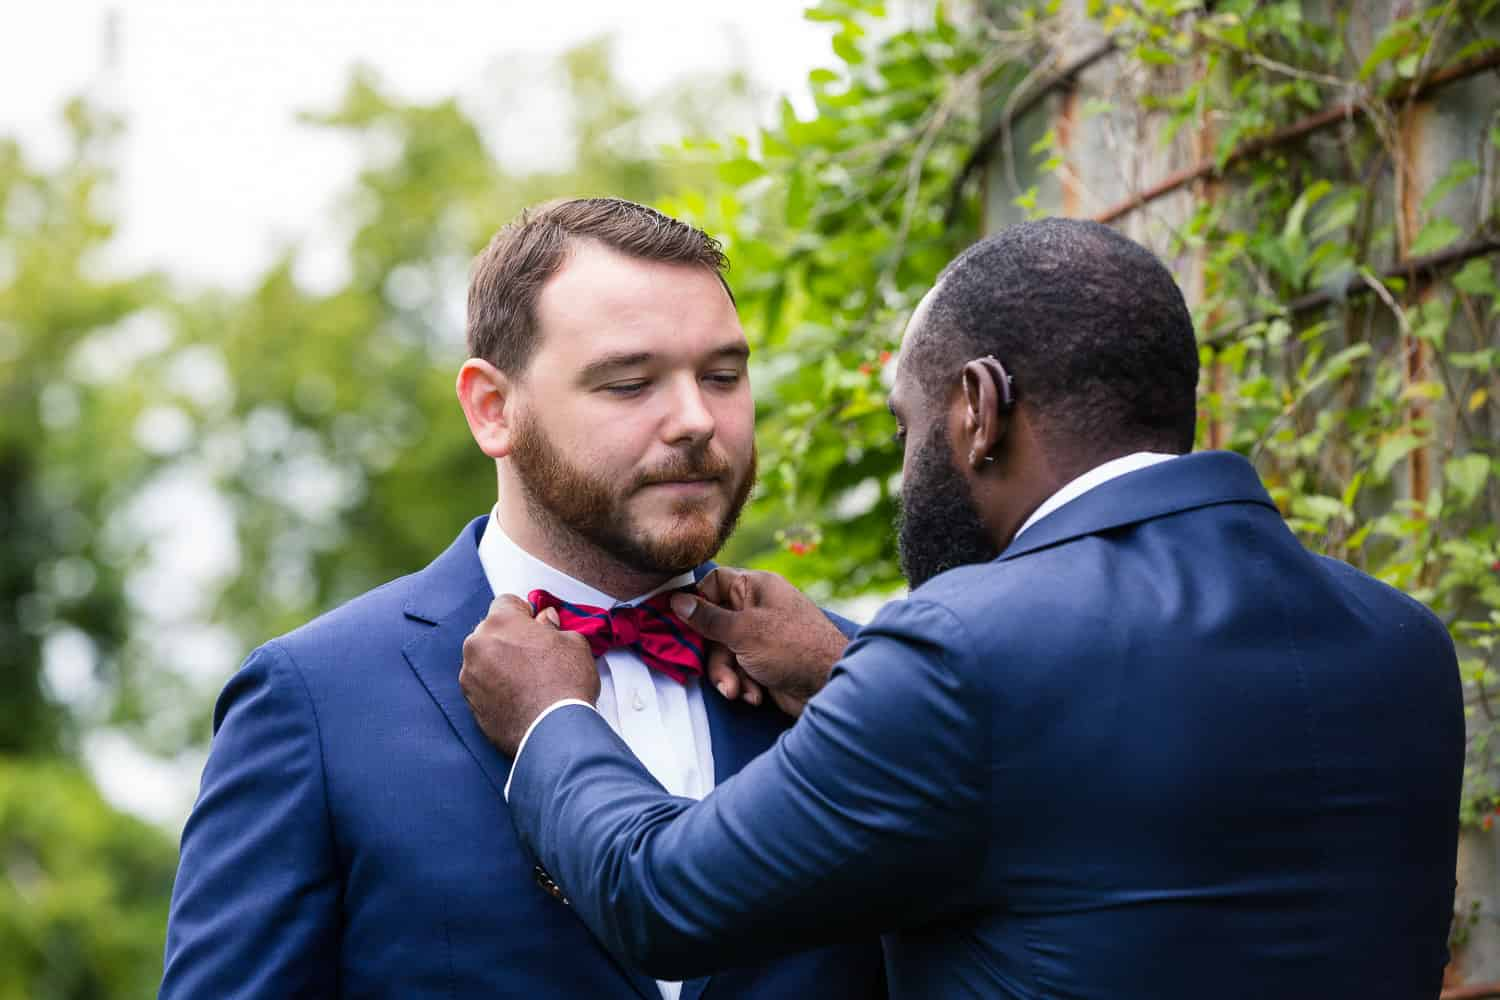 A first look at a twin silos wedding between a gay couple.